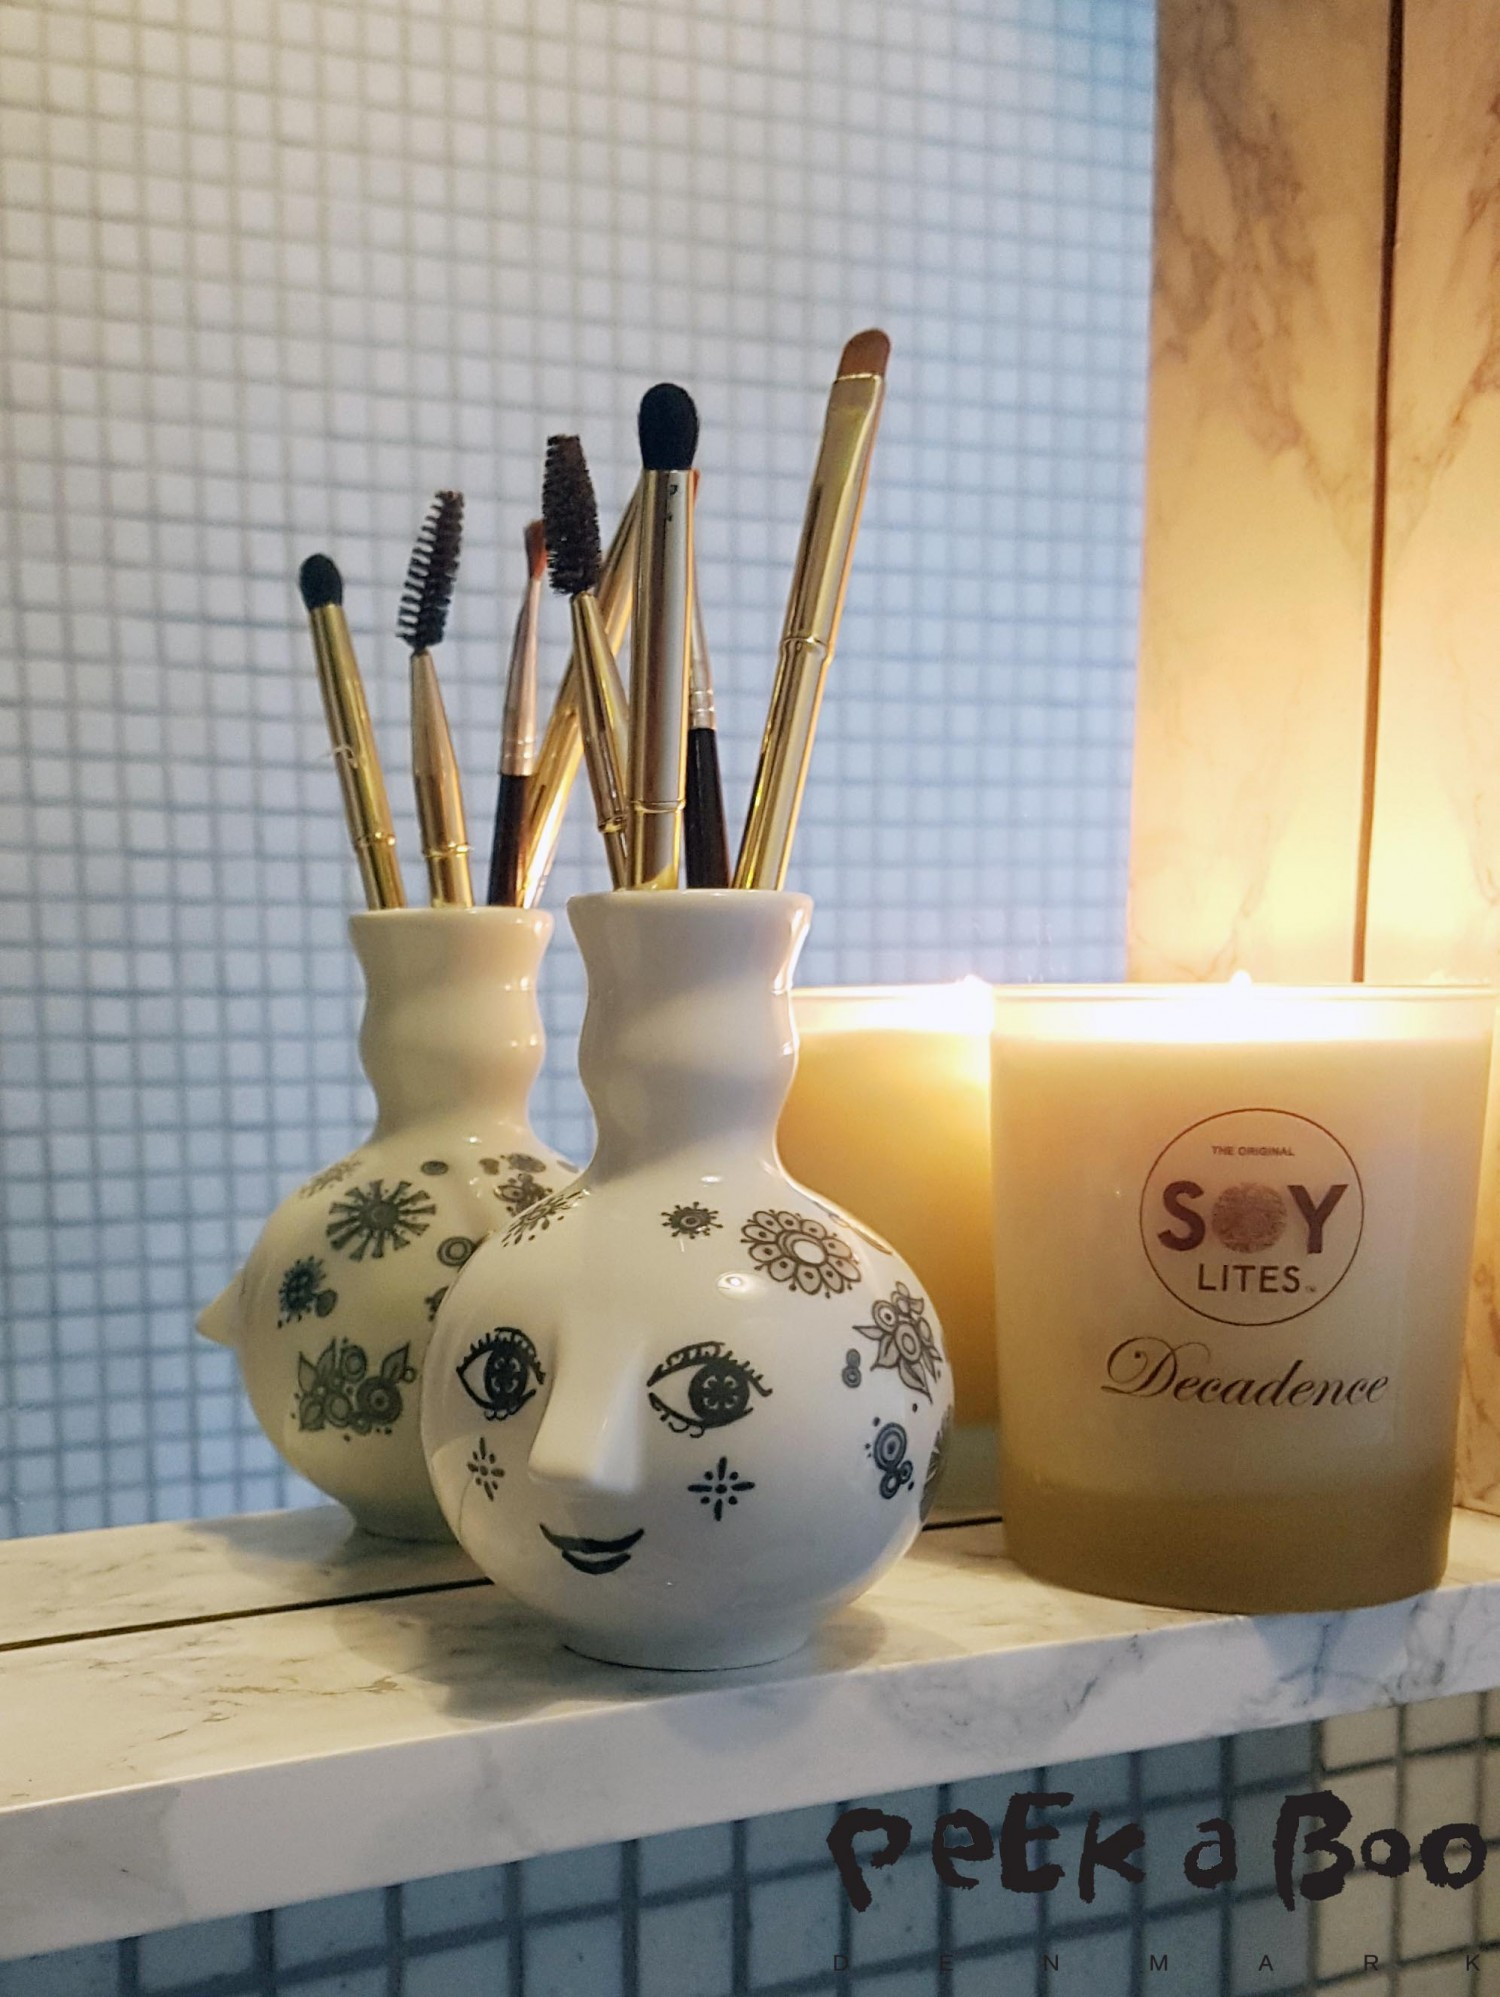 The mini vase Mie, here used for makeup brushes .